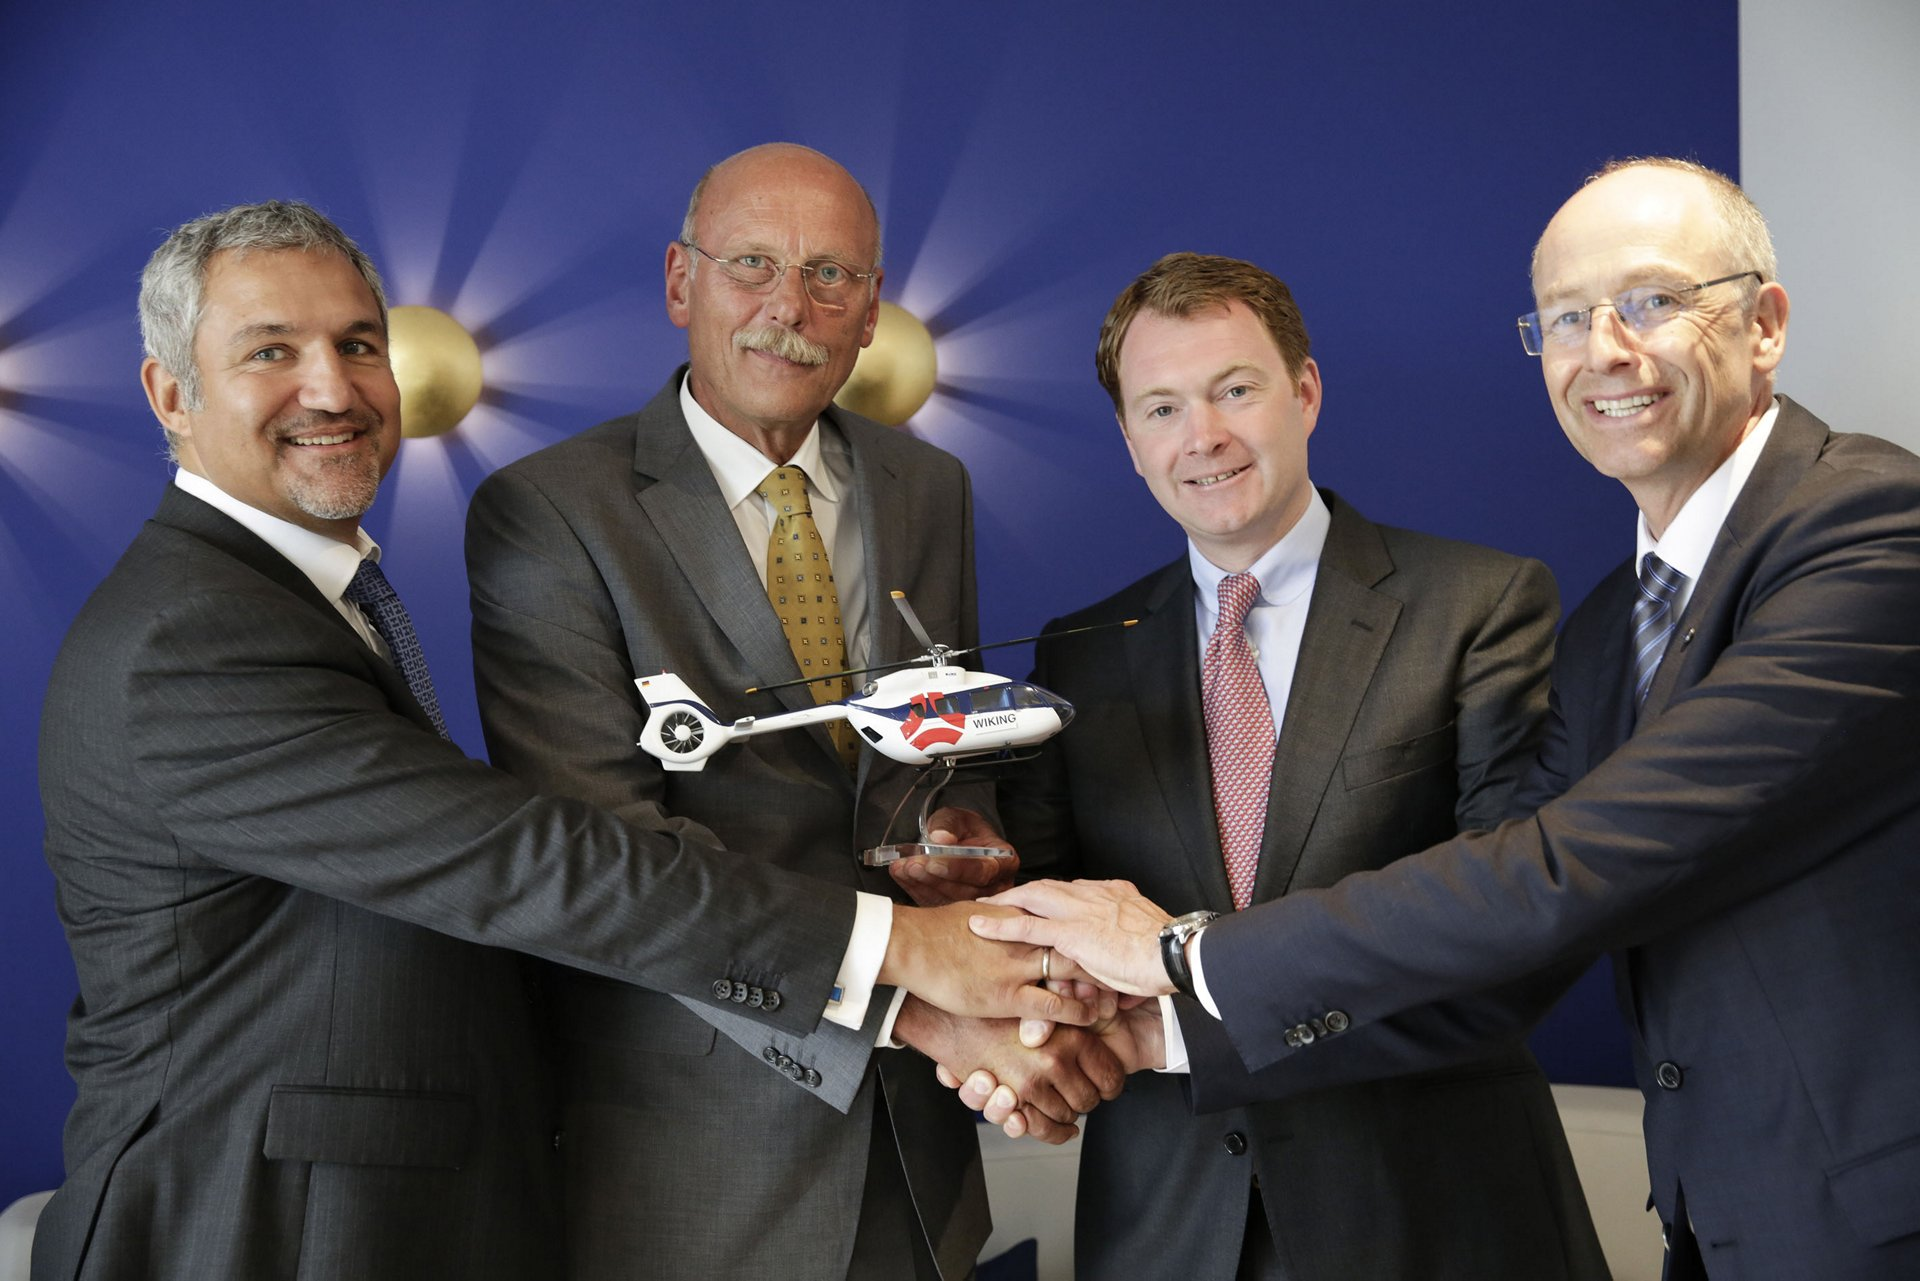 WIKING Helikopter Service GmbH orders two H145s for offshore operations